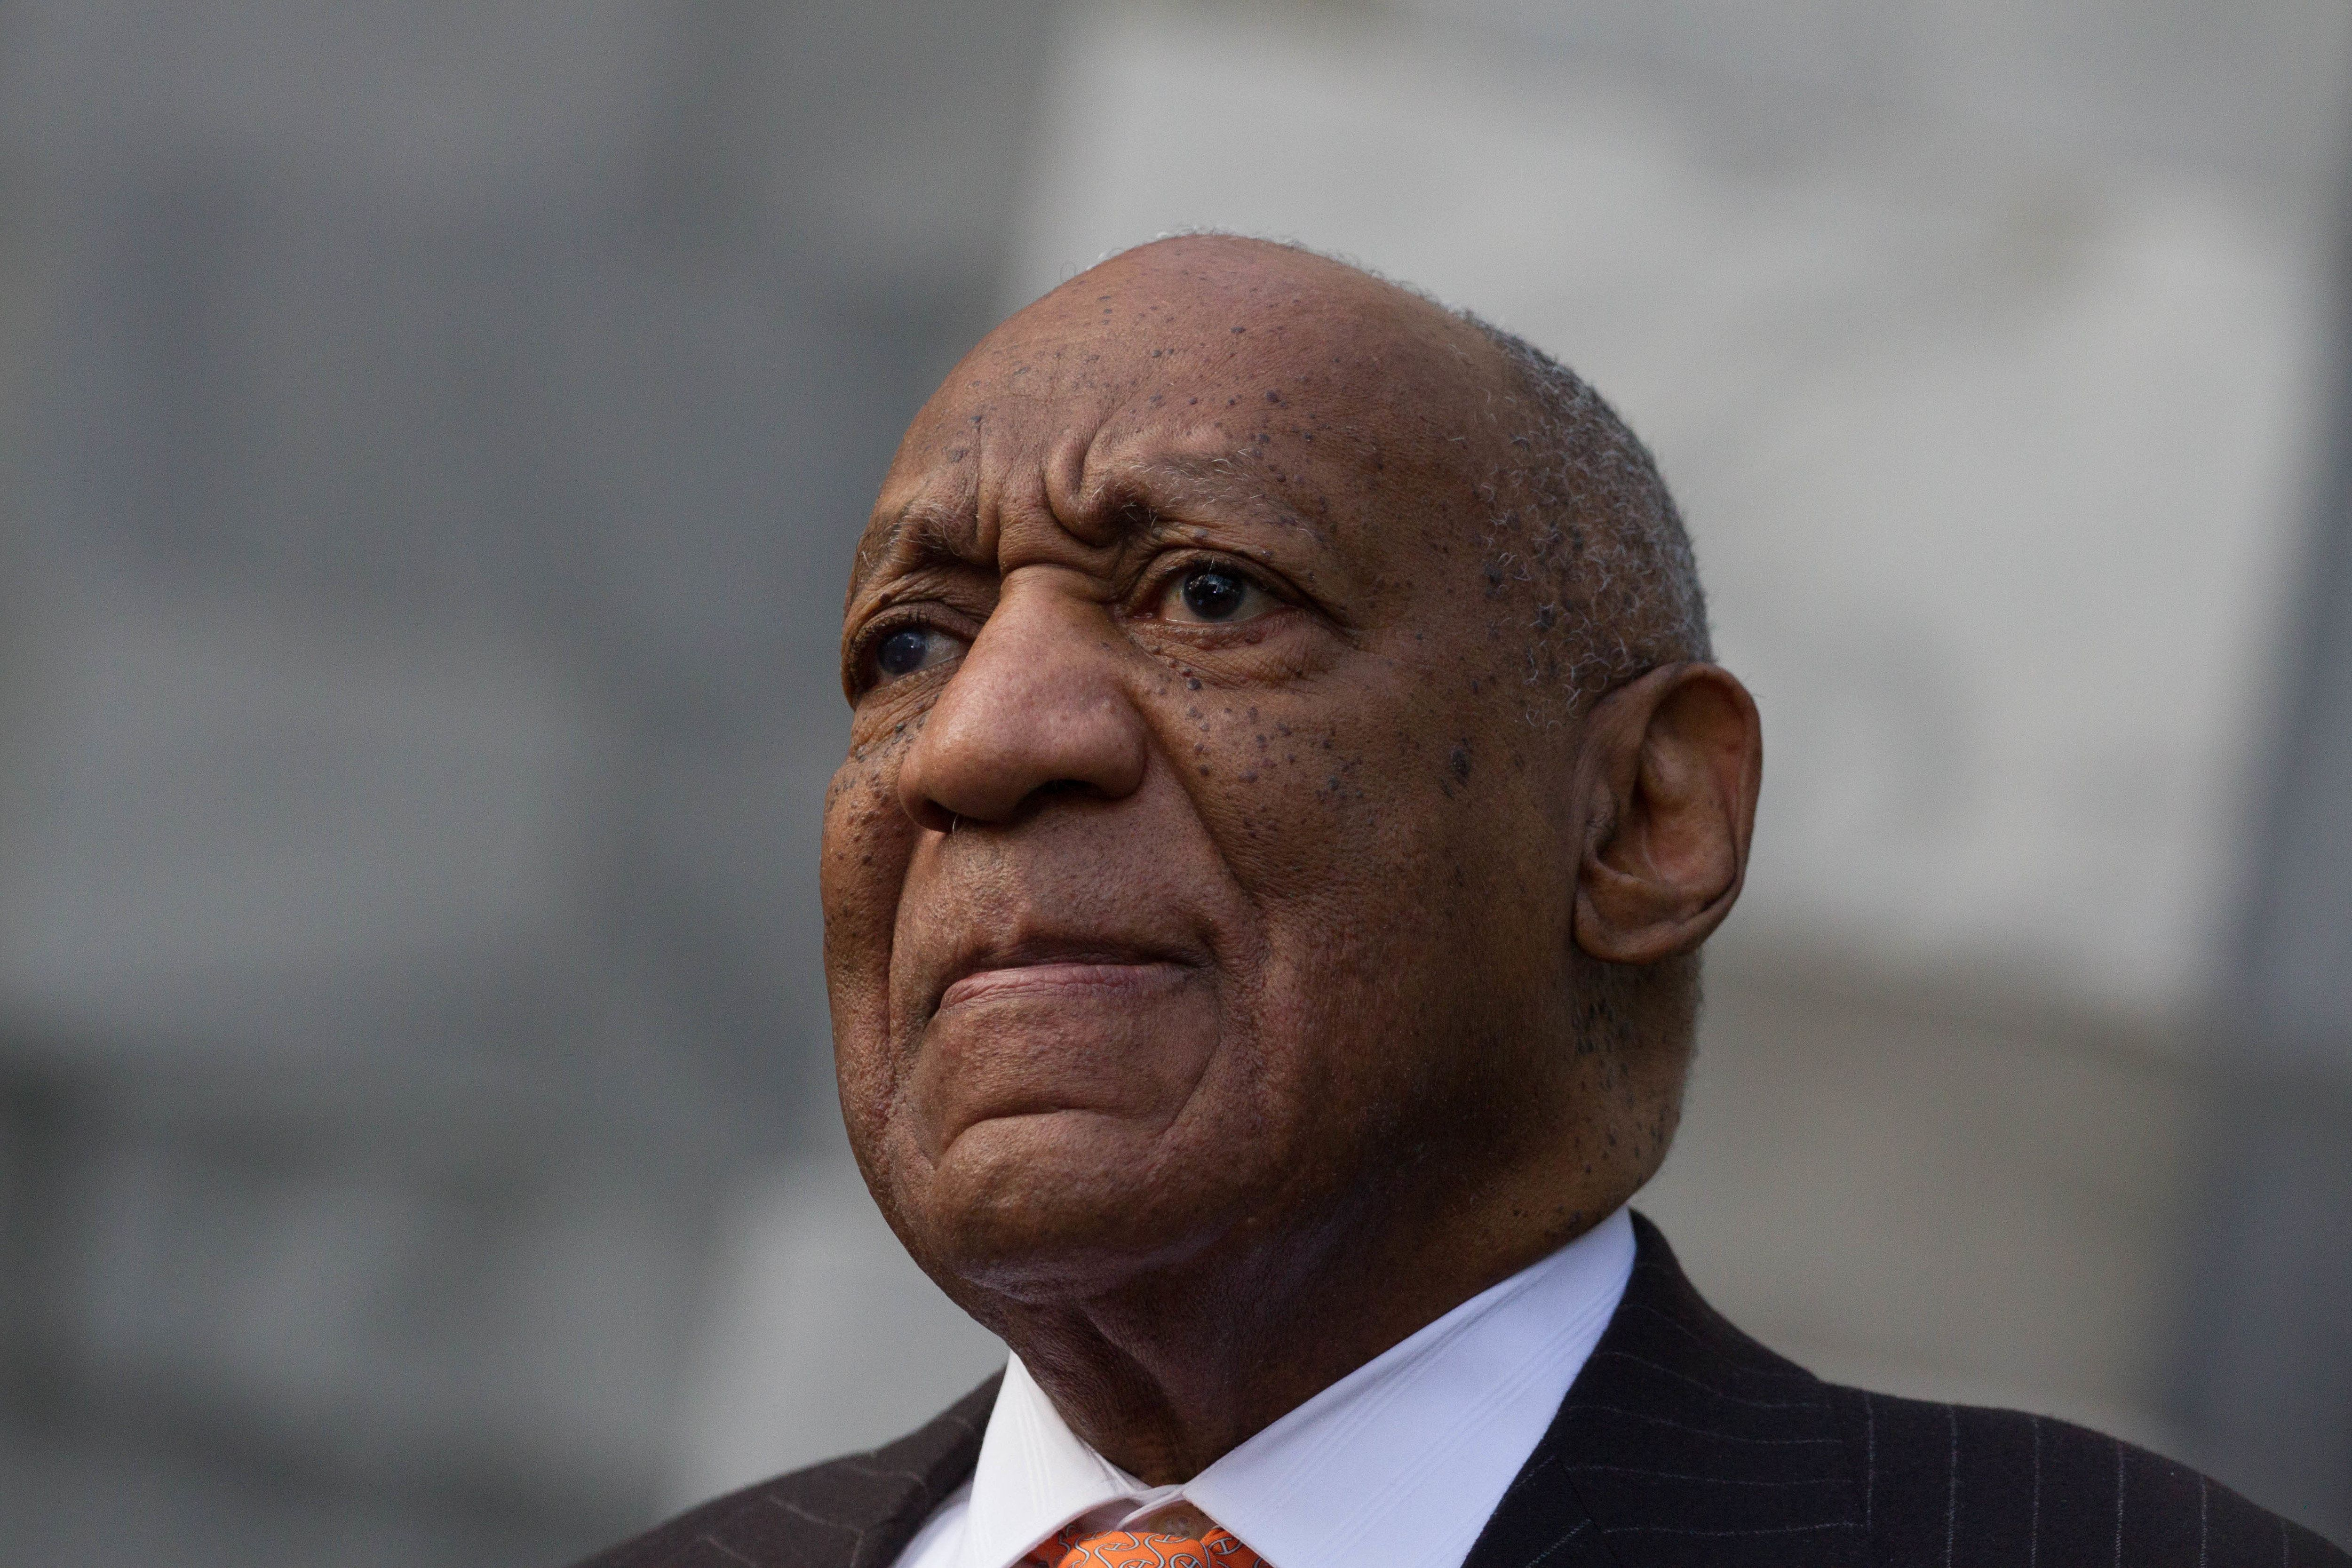 NORRISTOWN, PA, UNITED STATES - 2018/04/10: Actor Bill Cosby stands as spokesman Andrew Wyatt addresses the media ahead of day 2 of Cosby's sexual assault re-trial at the Montgomery County Courthouse. (Photo by Michael Candelori/Pacific Press/LightRocket via Getty Images)